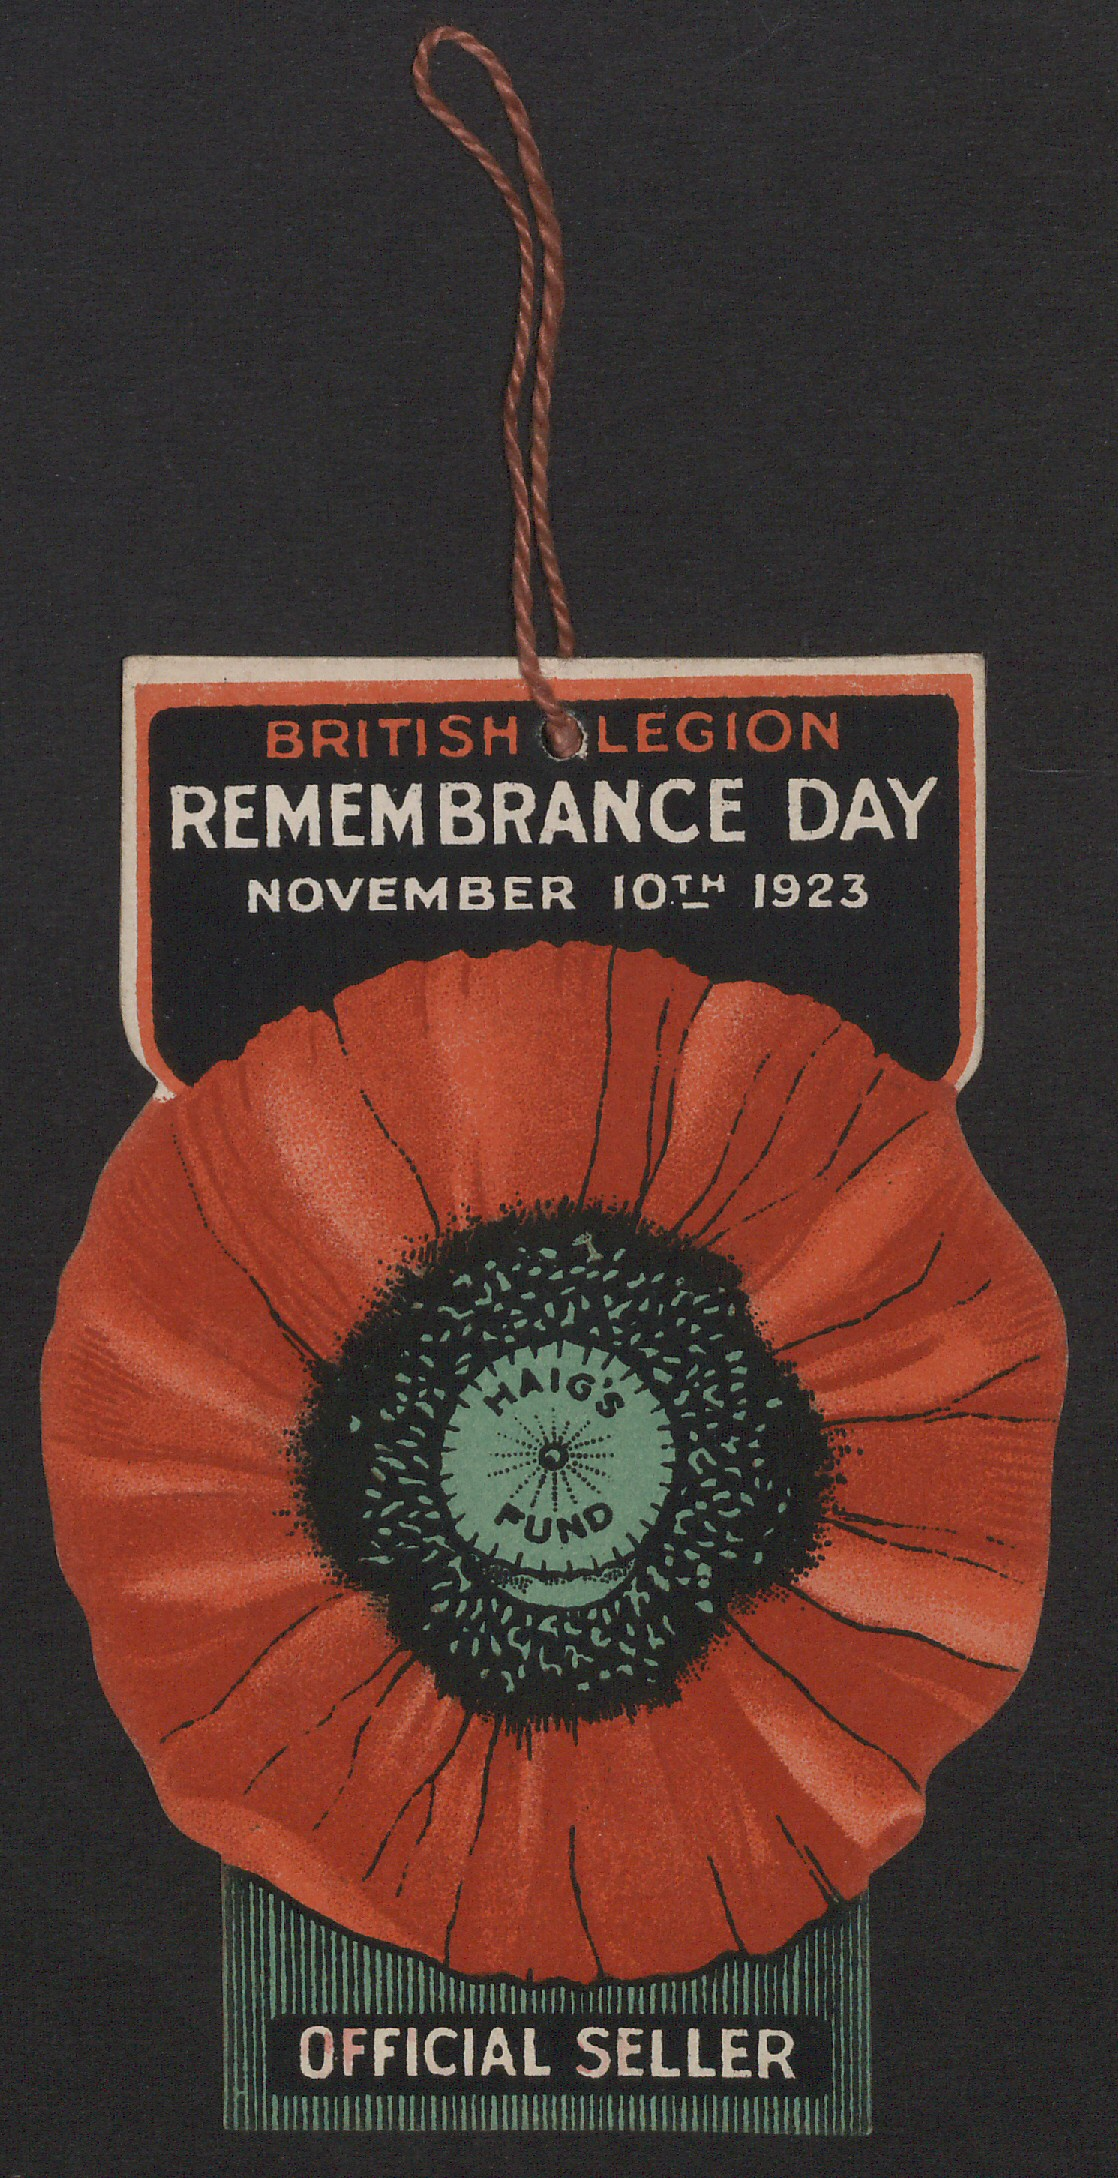 Lest We Forget. Remembrance Day 2013